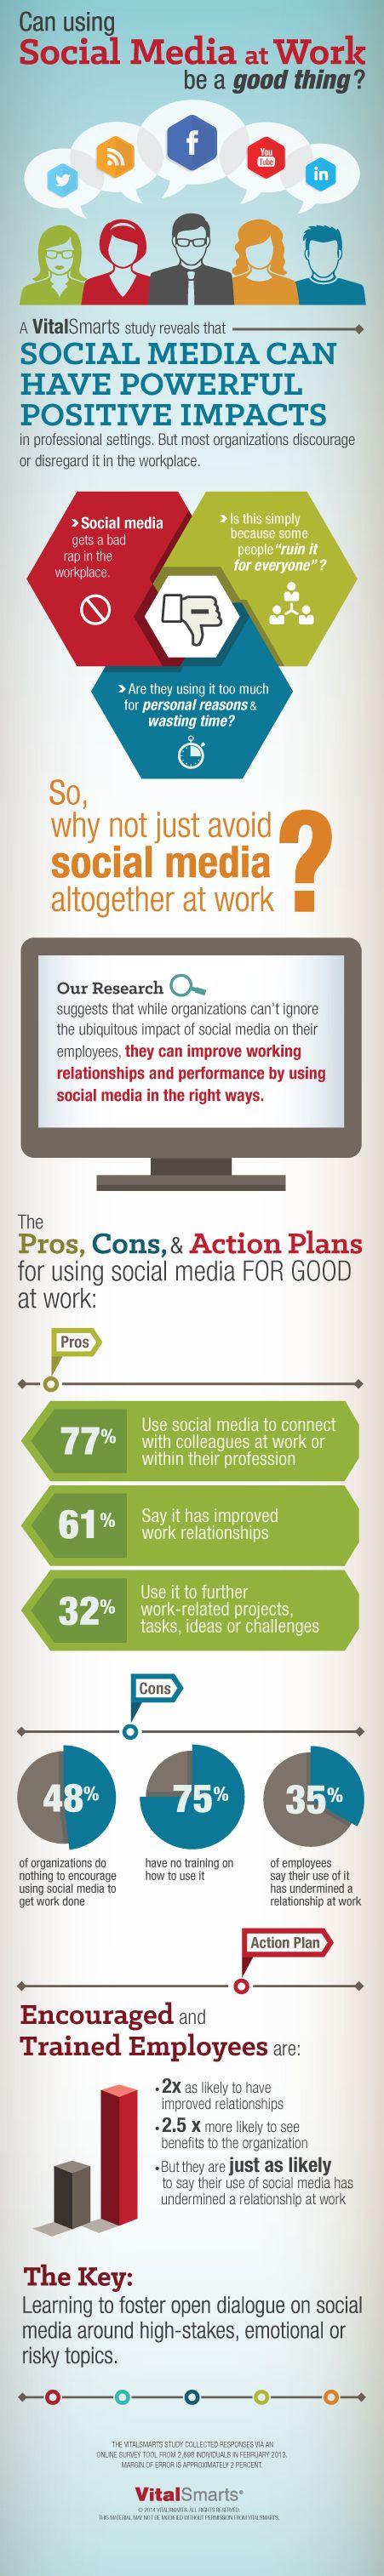 Can Using Social Media At Work Be A Good Thing - infographic